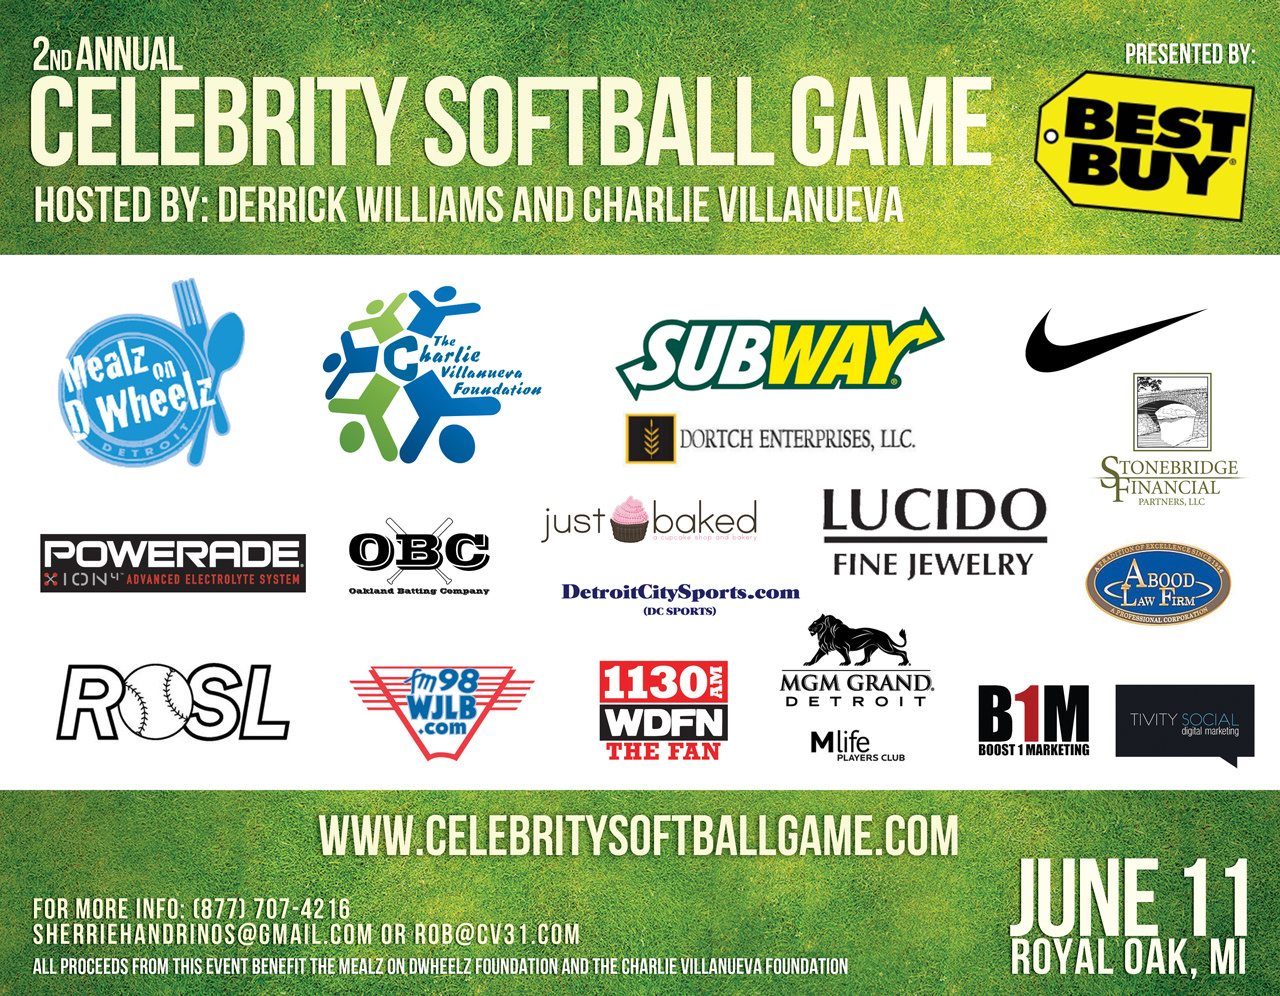 2nd Annual Celebrity Softball Game Sponsors 2011